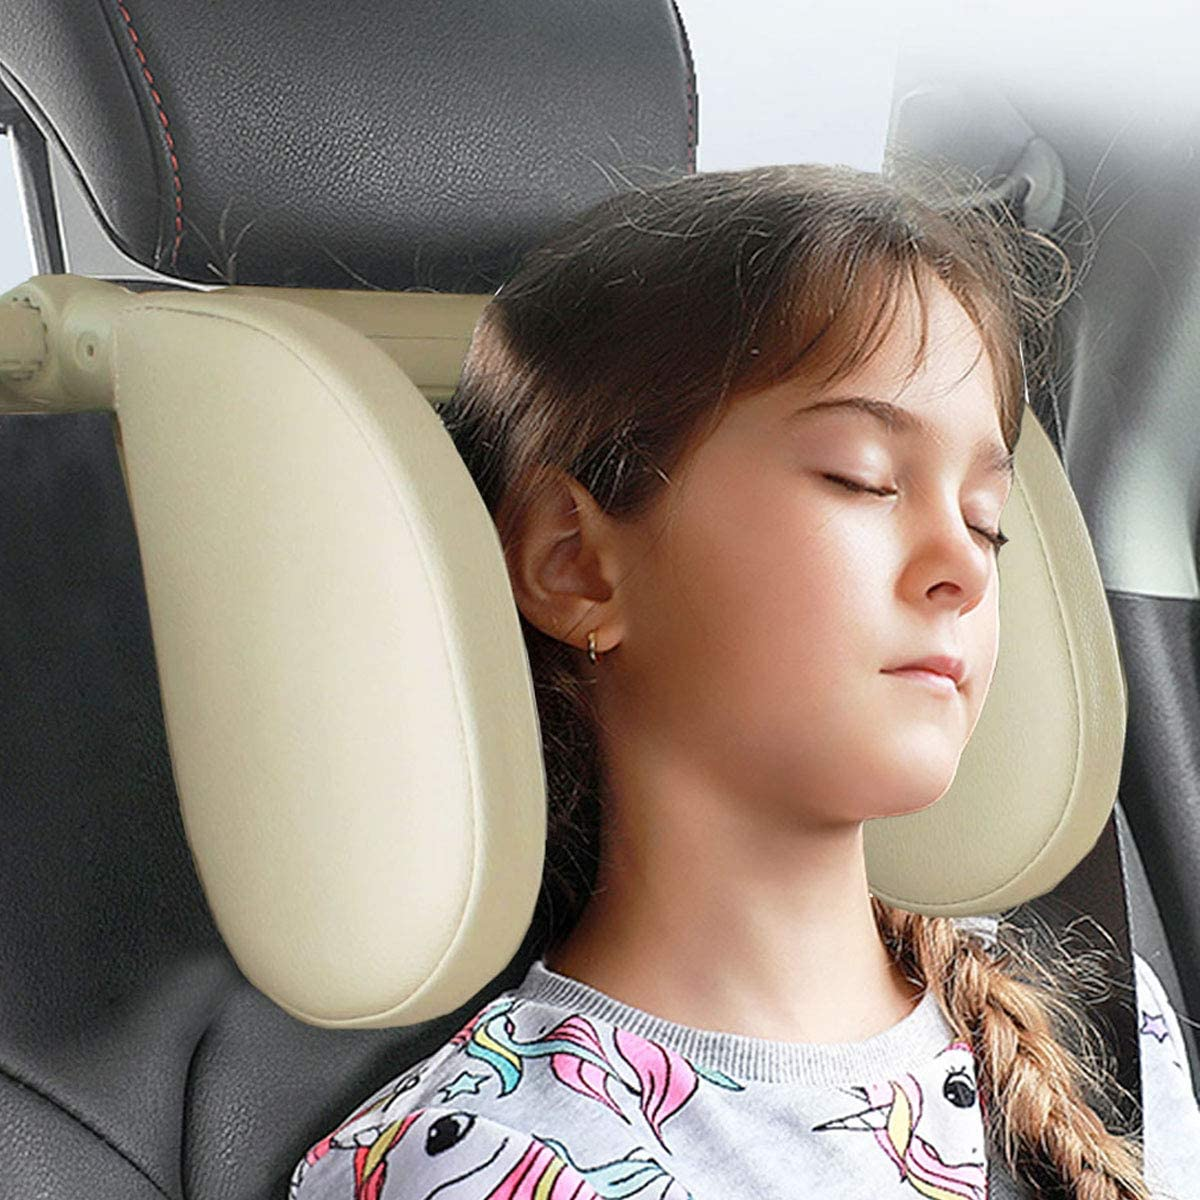 TEEPIRE Car Seat Headrest Pillow, Headrest for car, Head Neck Support Detachable,Premium seat held Pillow, 360 Degree Adjustable Both Sides Travel Sleeping Cushion for Kids Adults